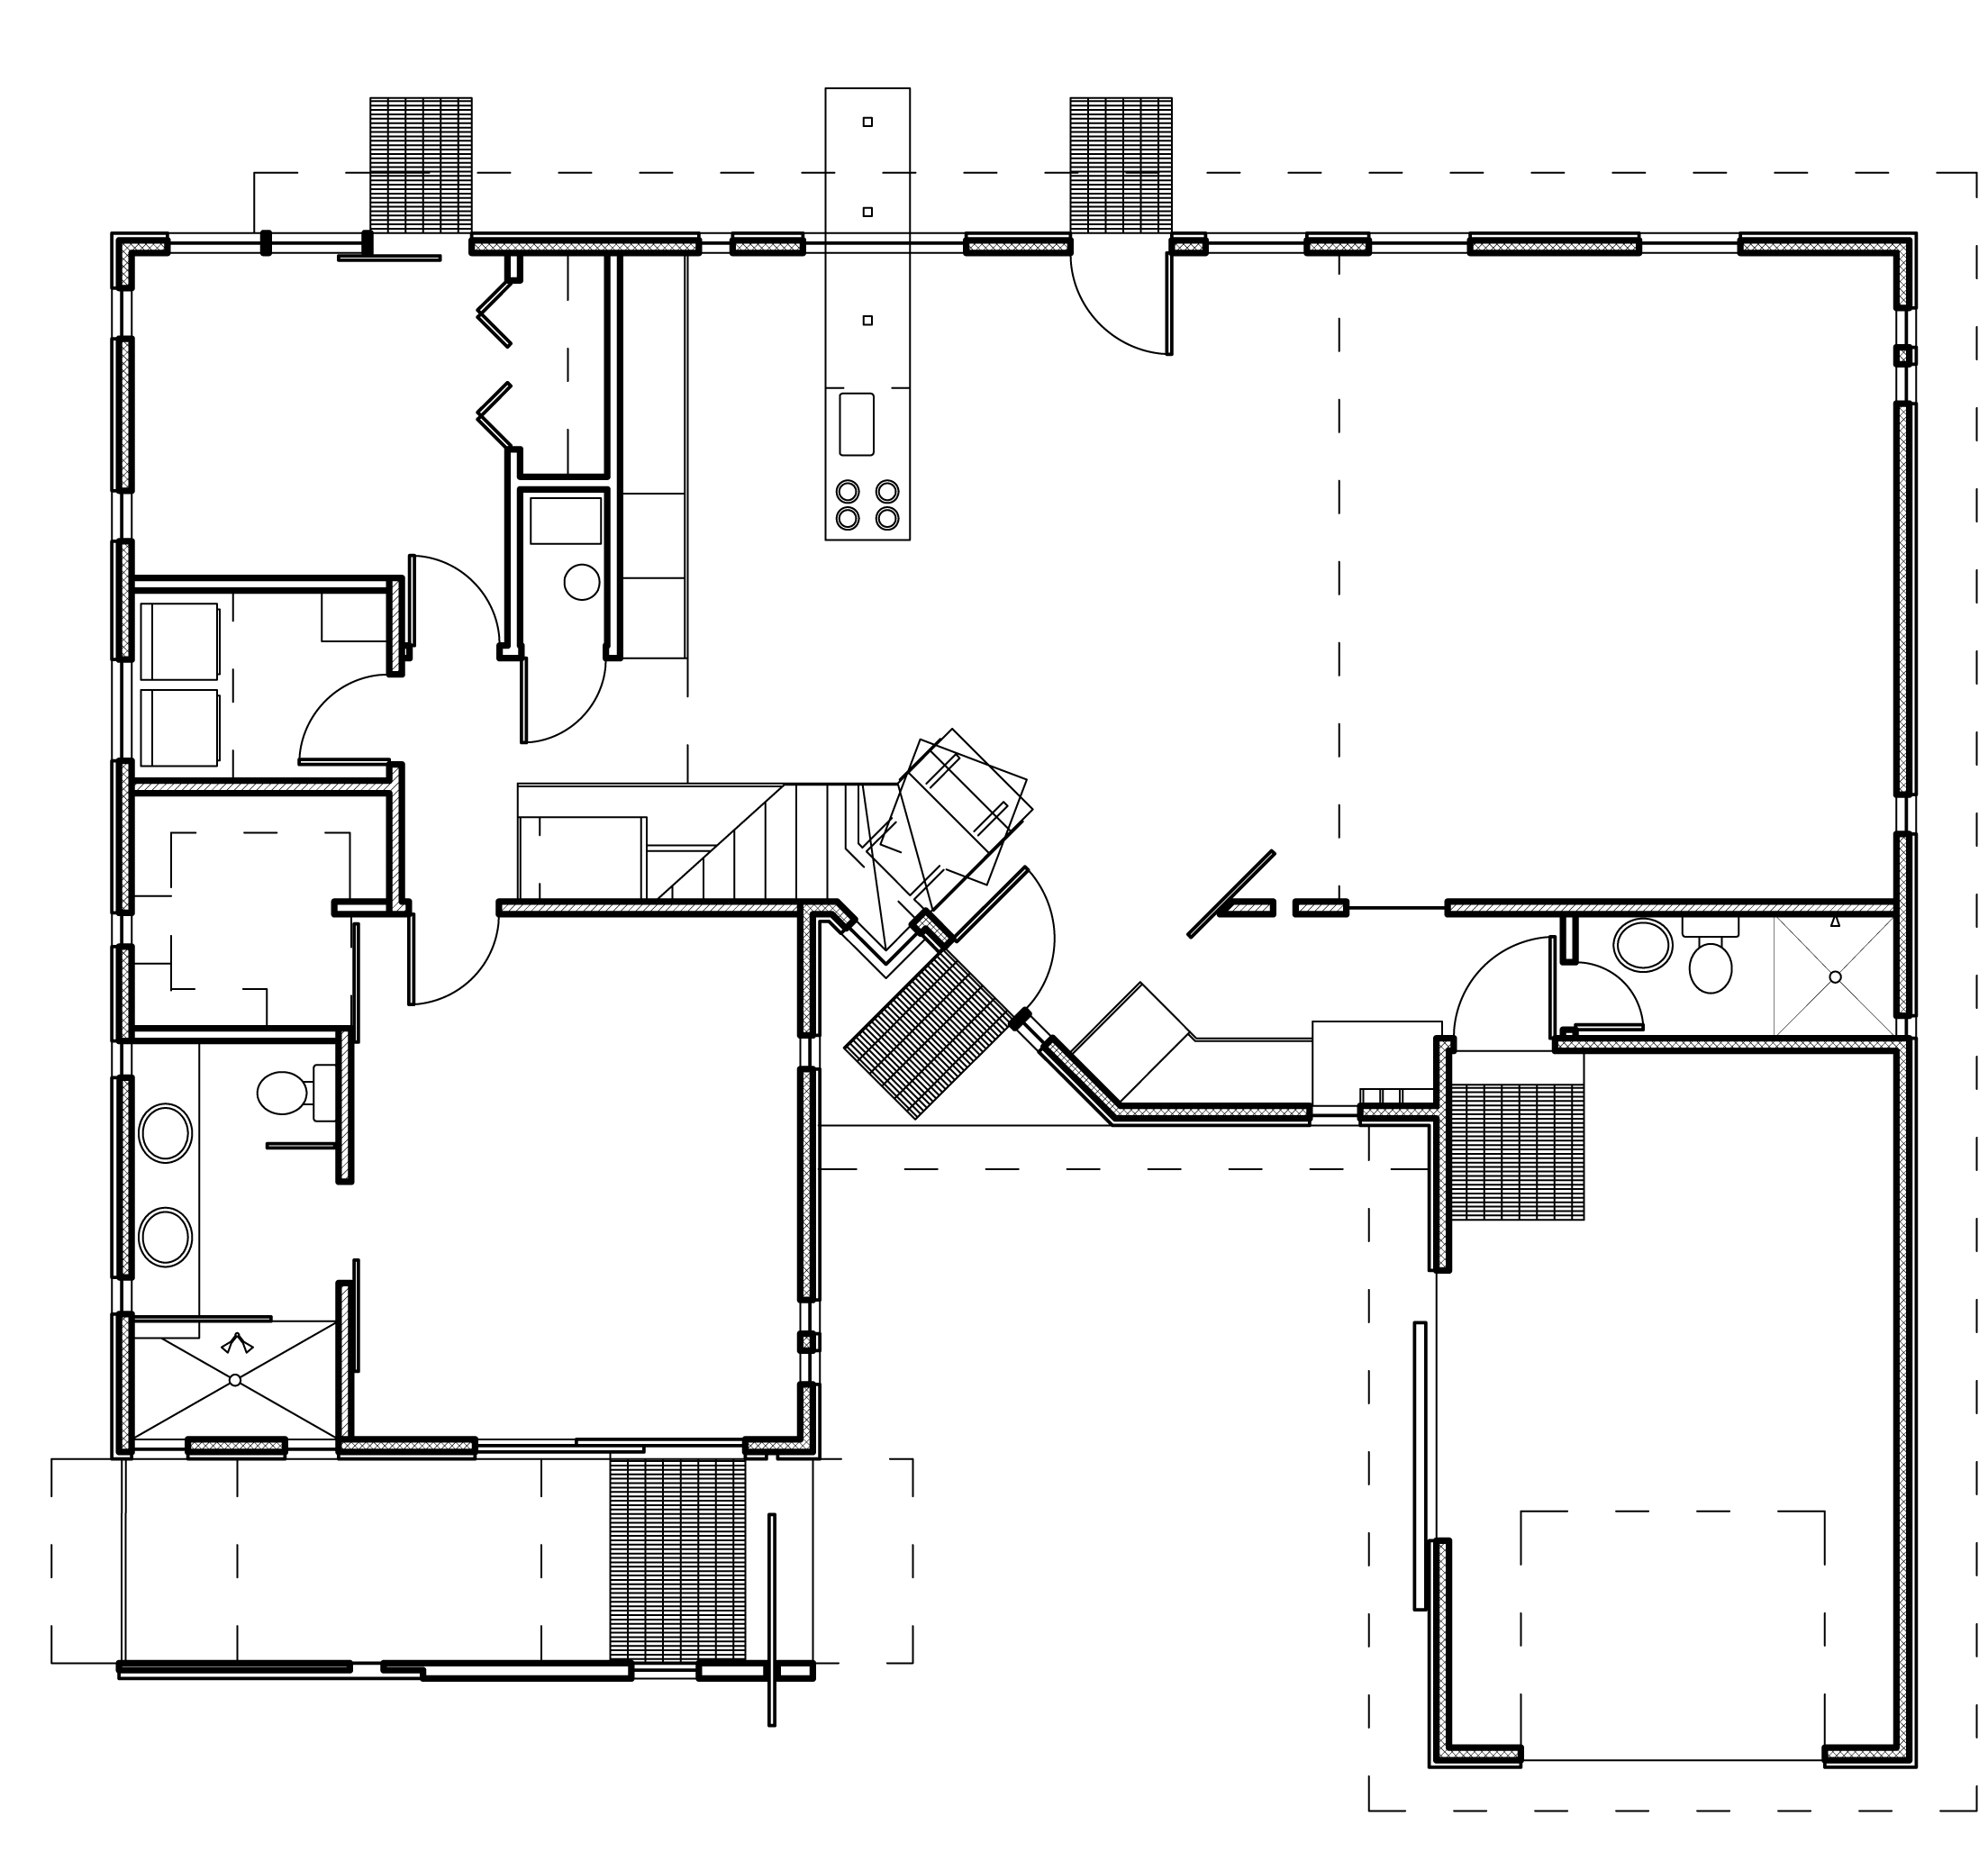 Modern house plans contemporary home designs floor plan 03 for Contemporary home plans